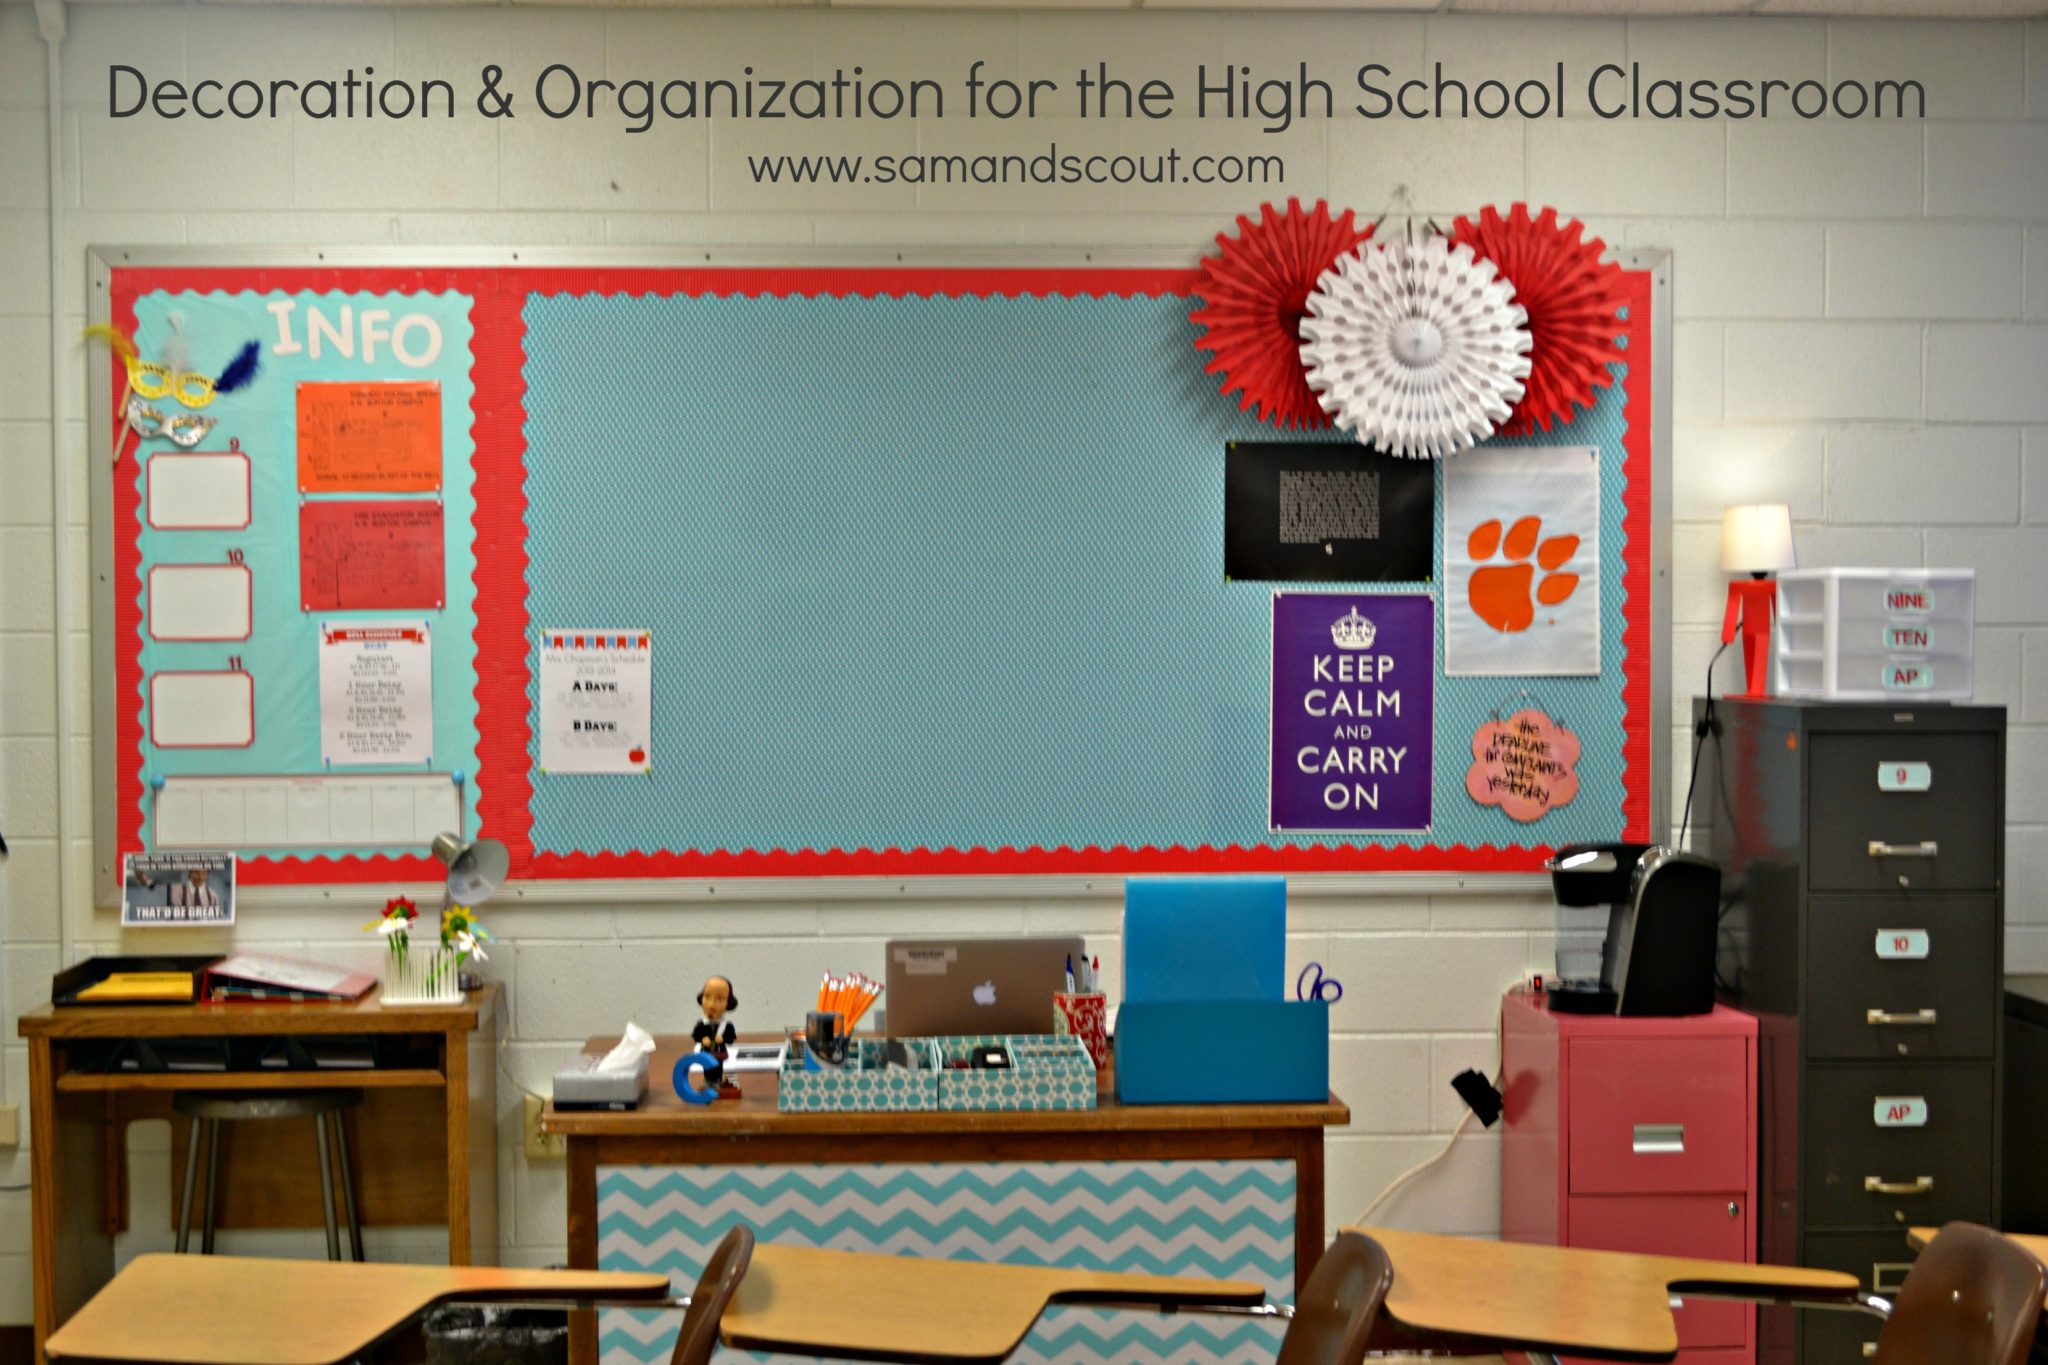 Classroom Organization Ideas Middle School ~ Decoration organization for the high school classroom